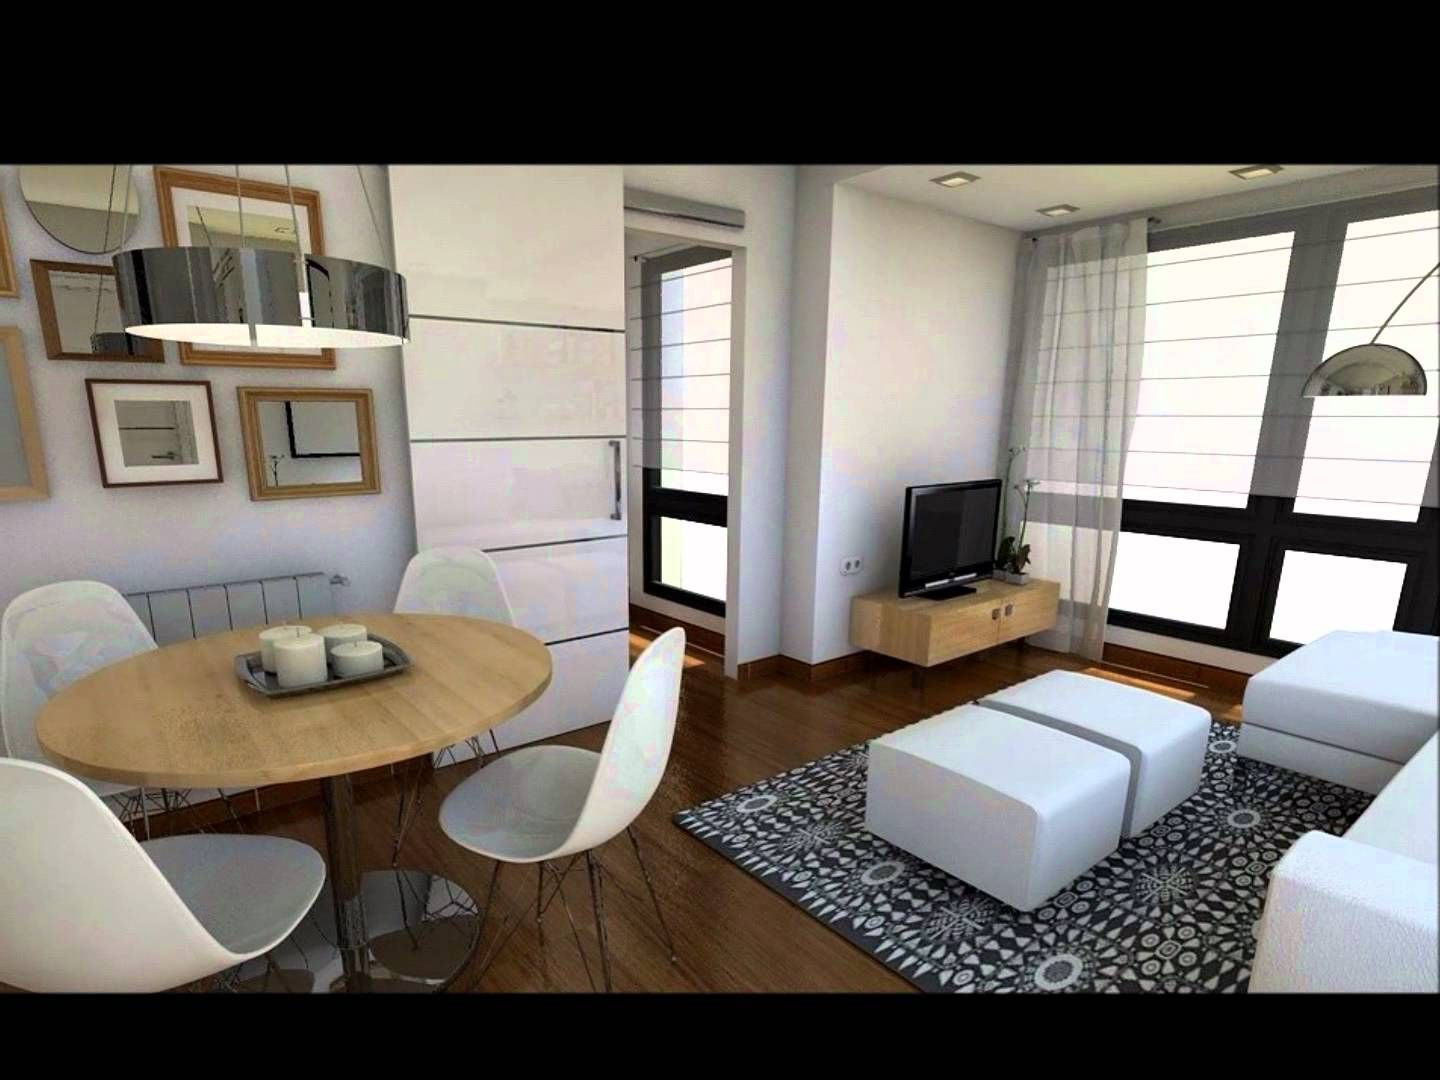 Dise o interior apartamento 40 m2 decoracion for Diseno departamento pequeno